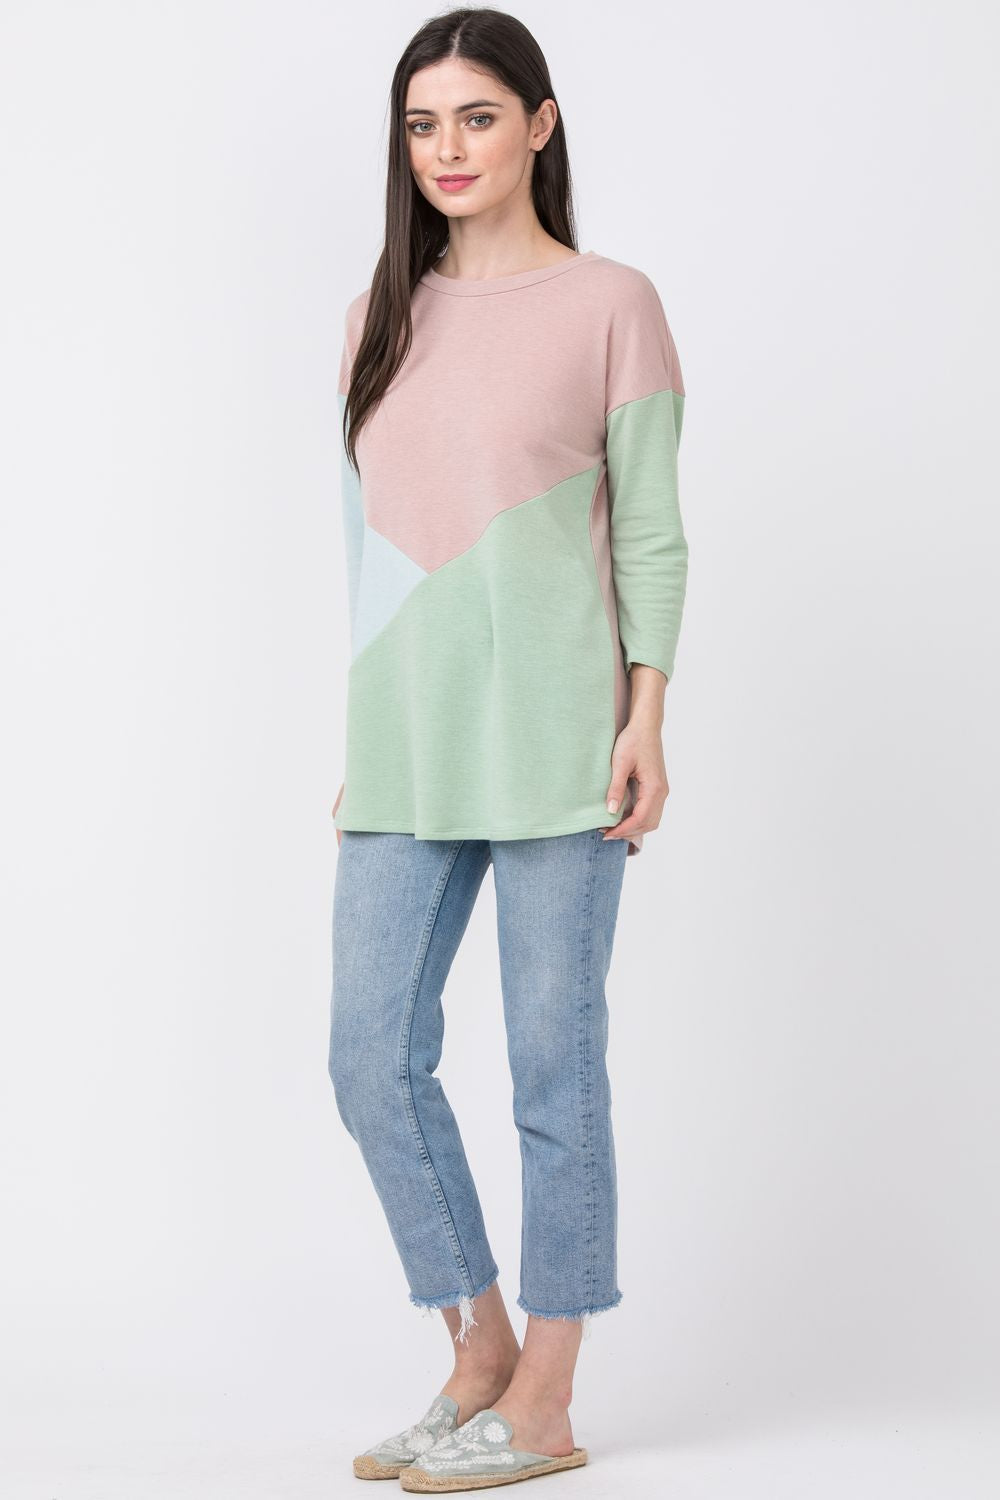 Pink Mint & Sage Cross Color Block Top